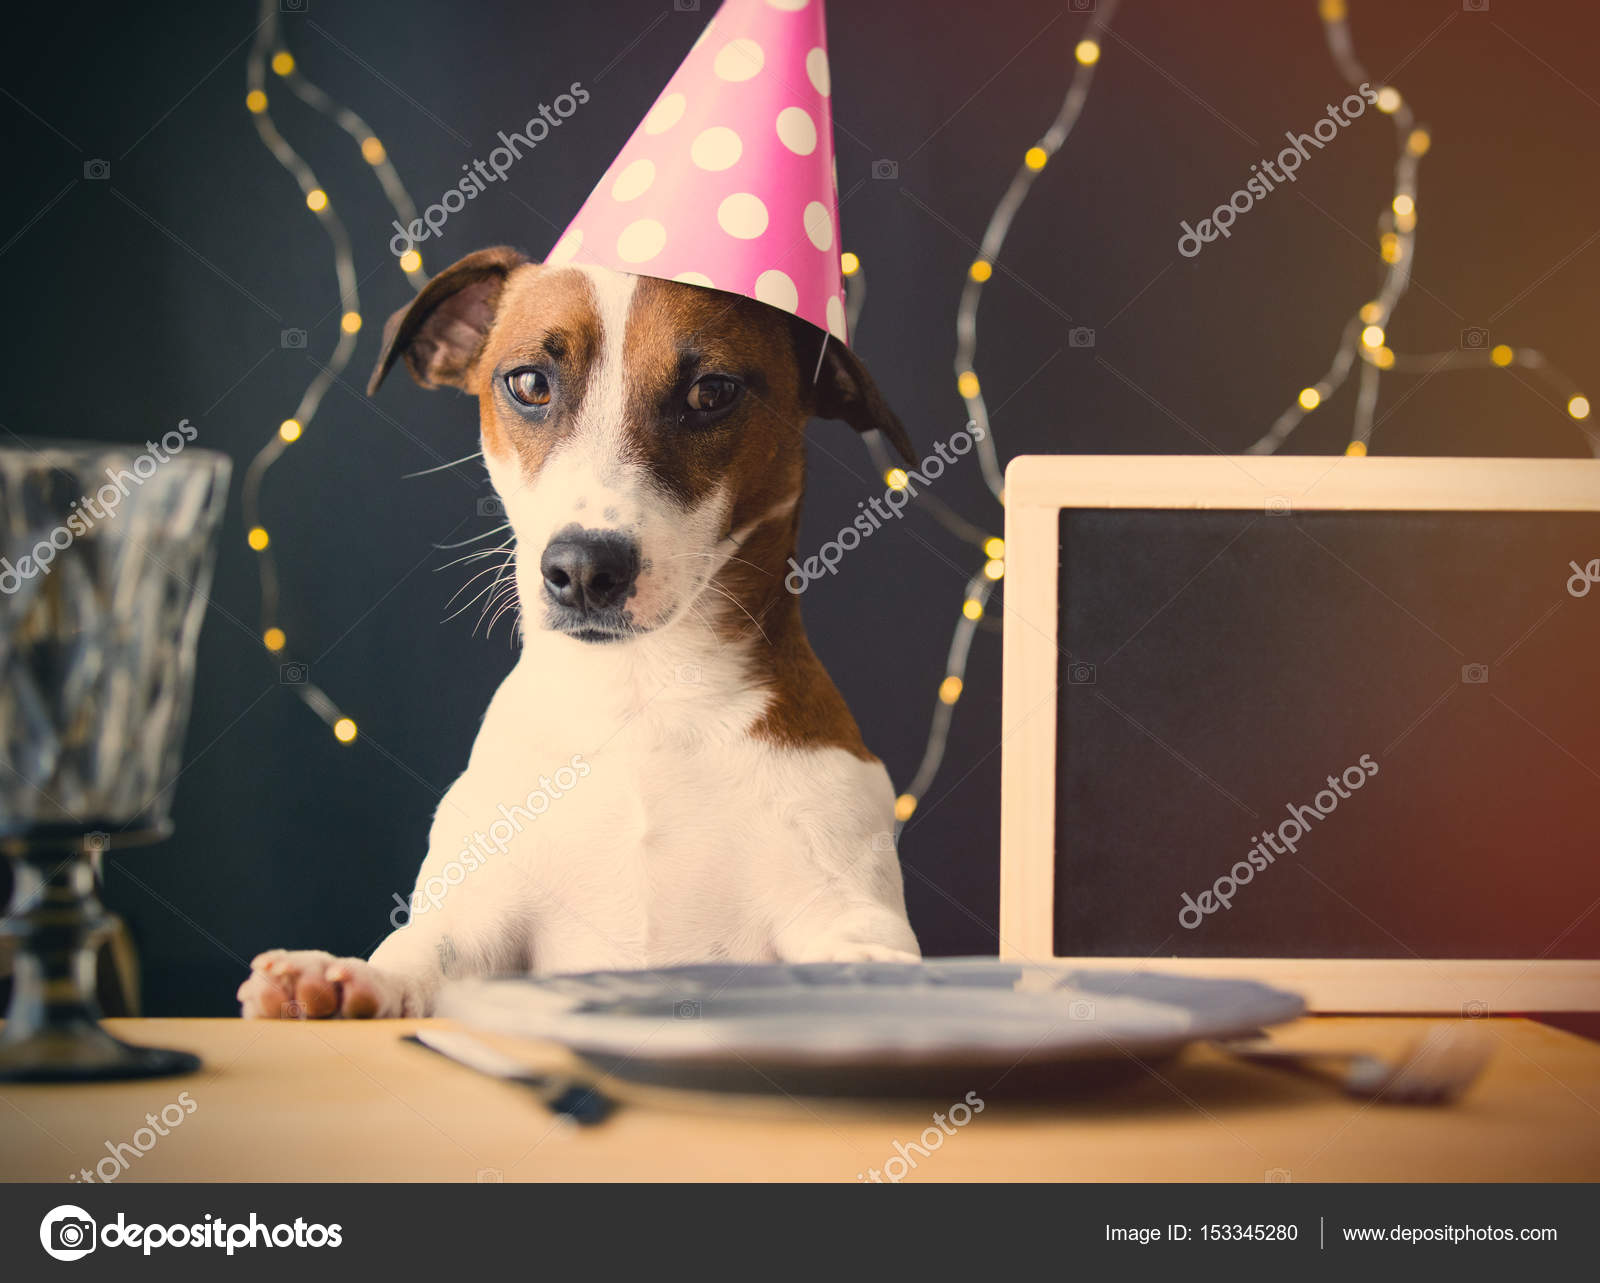 Cute Little Dog Wearing Pink Birthday Hat At The Table Against Electric Garlands Background Photo By